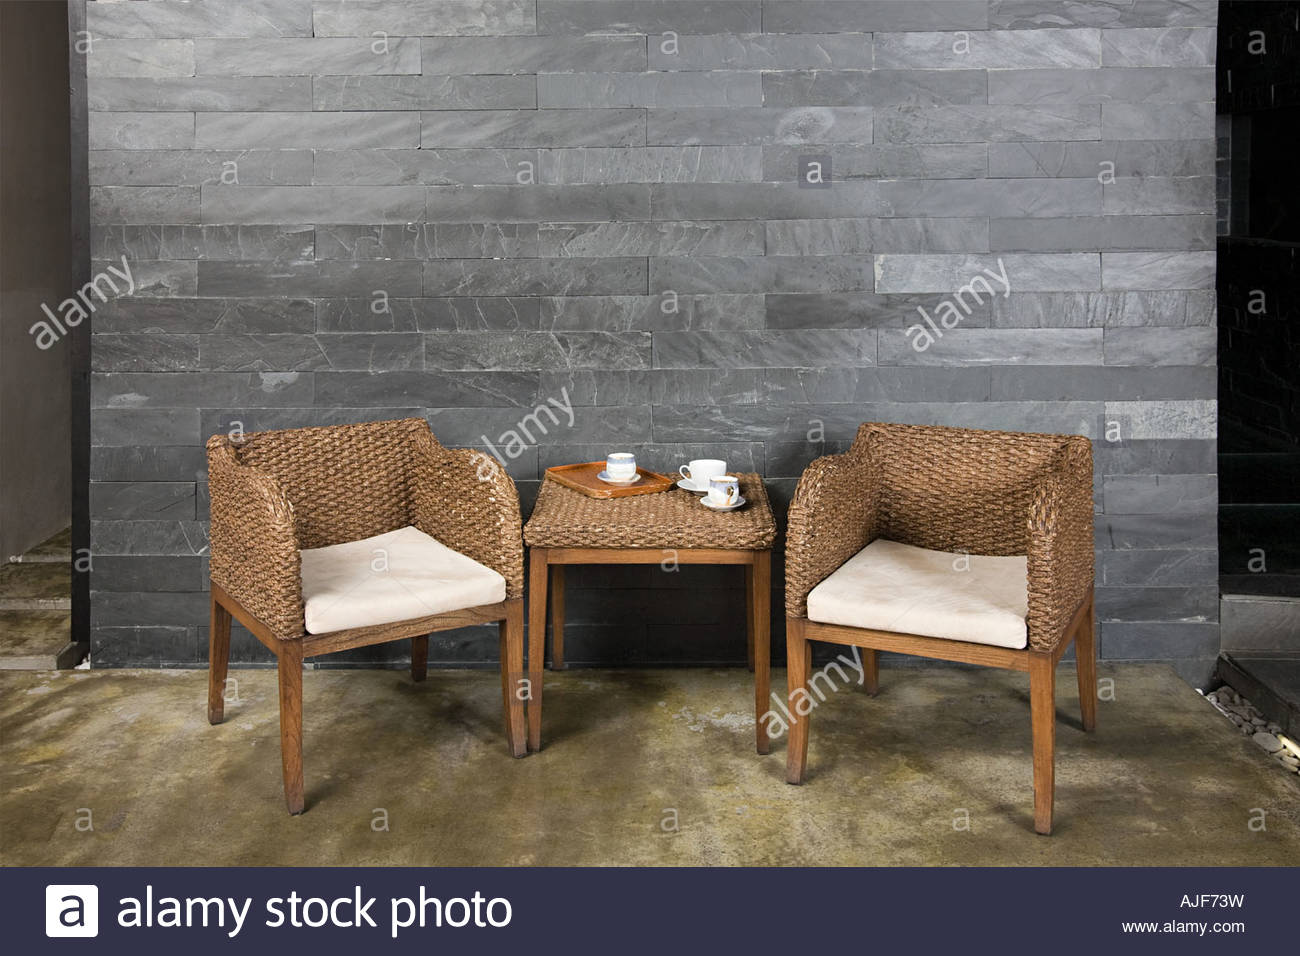 Wicker chairs and table - Stock Image